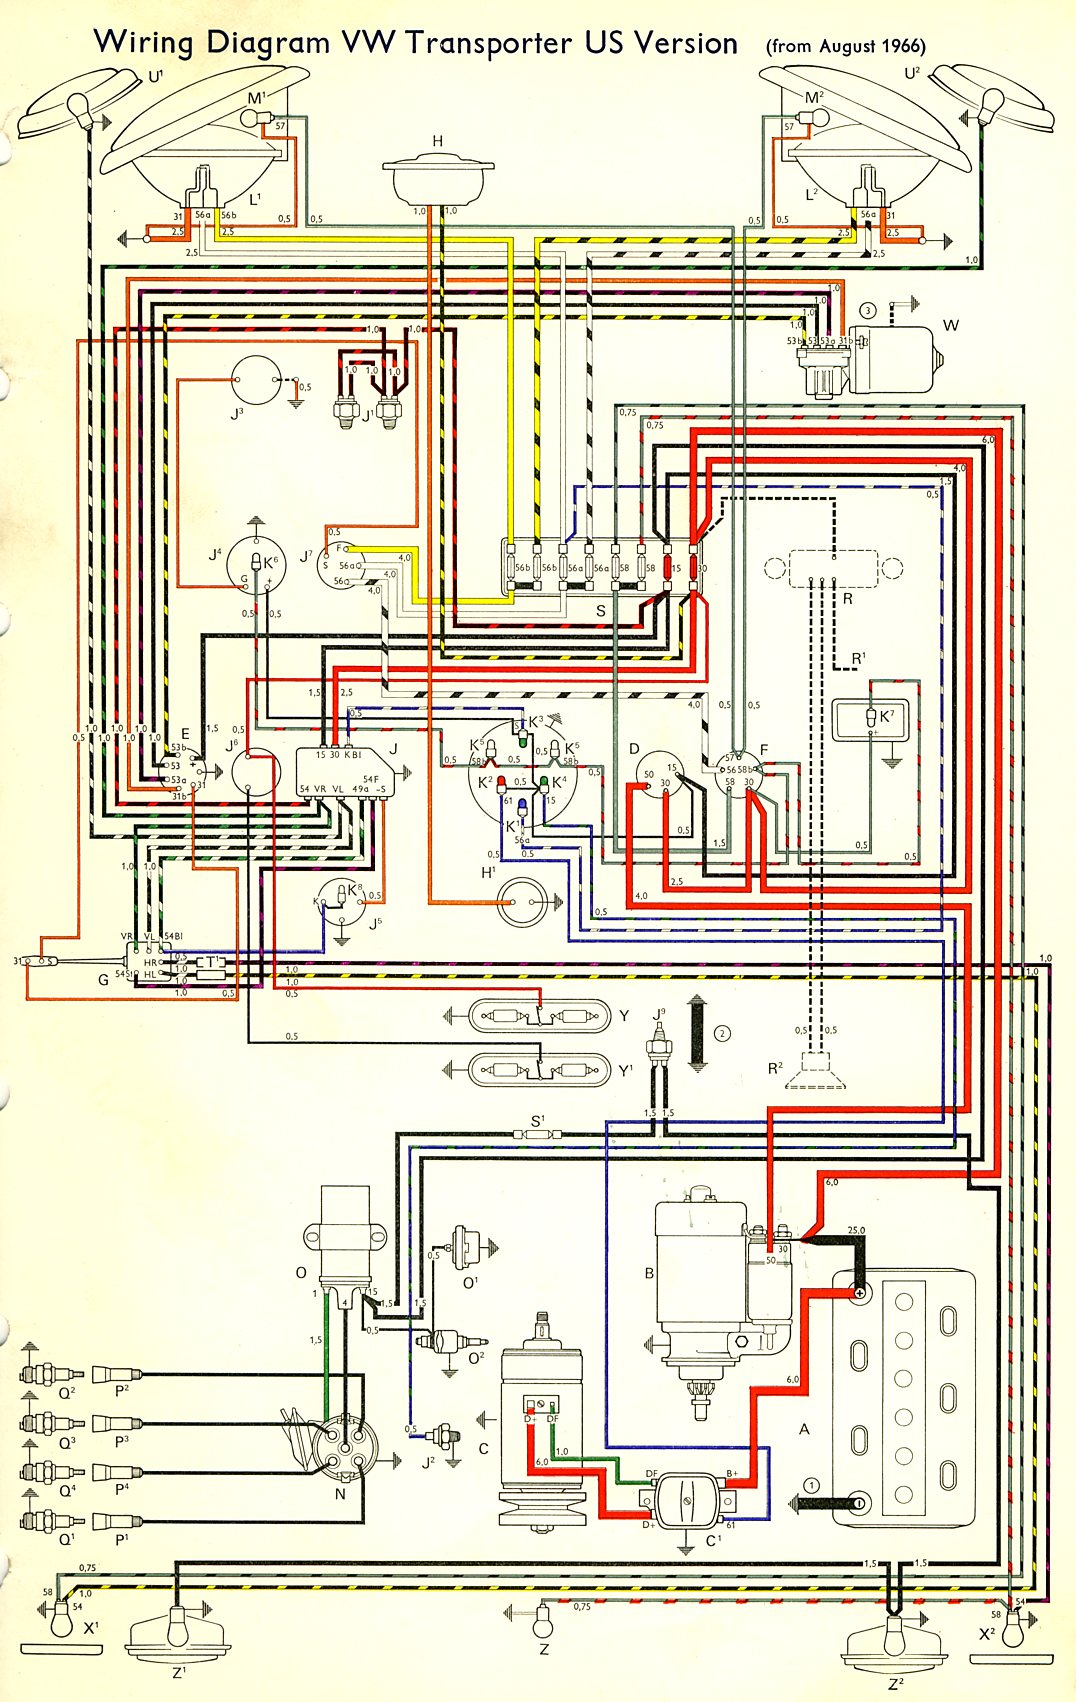 bus_67_USA 1967 bus wiring diagram (usa) thegoldenbug com 1971 vw bus wiring diagram at honlapkeszites.co